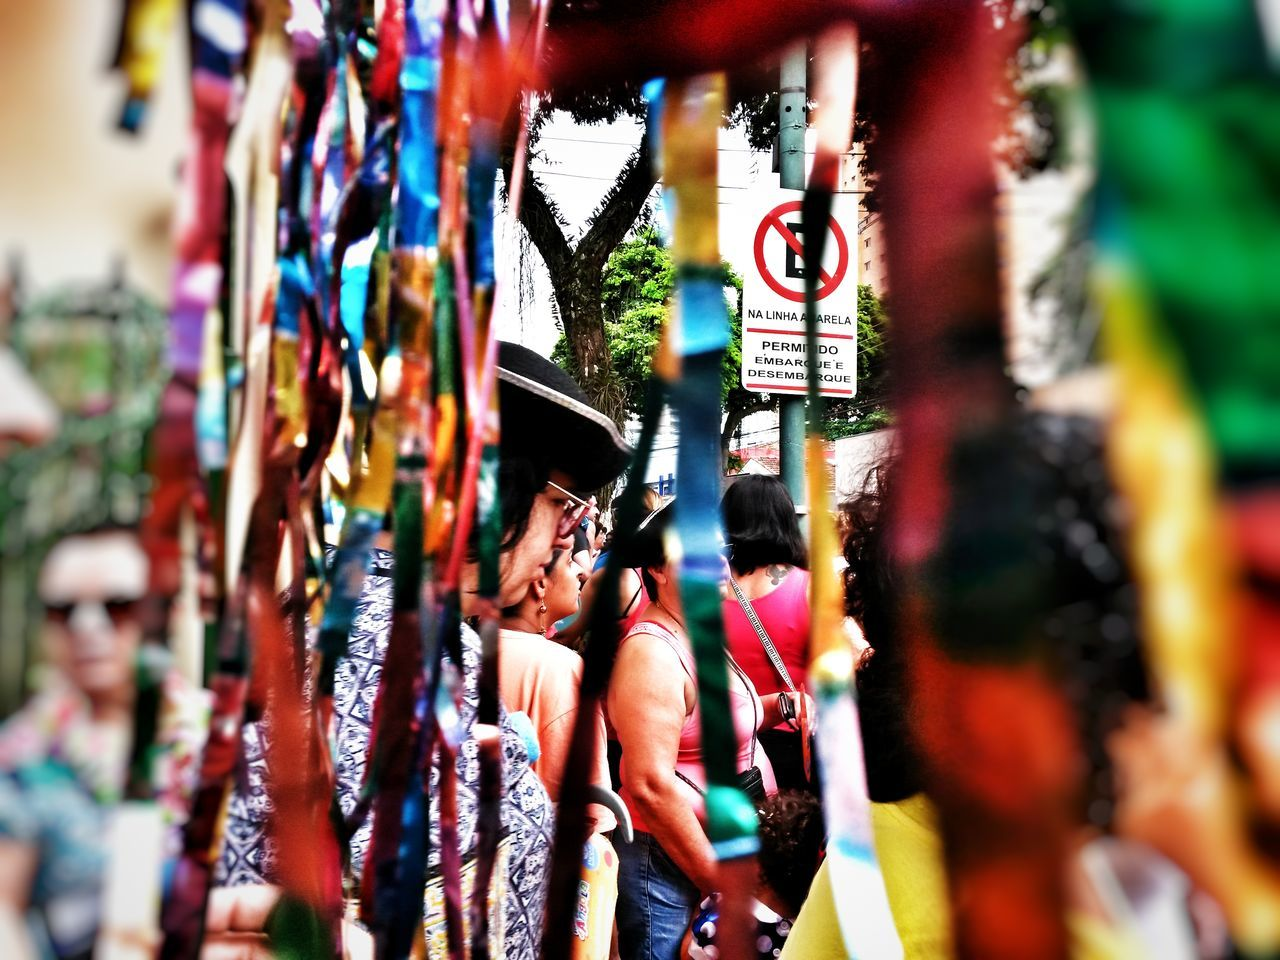 multi colored, religion, real people, day, spirituality, outdoors, men, people